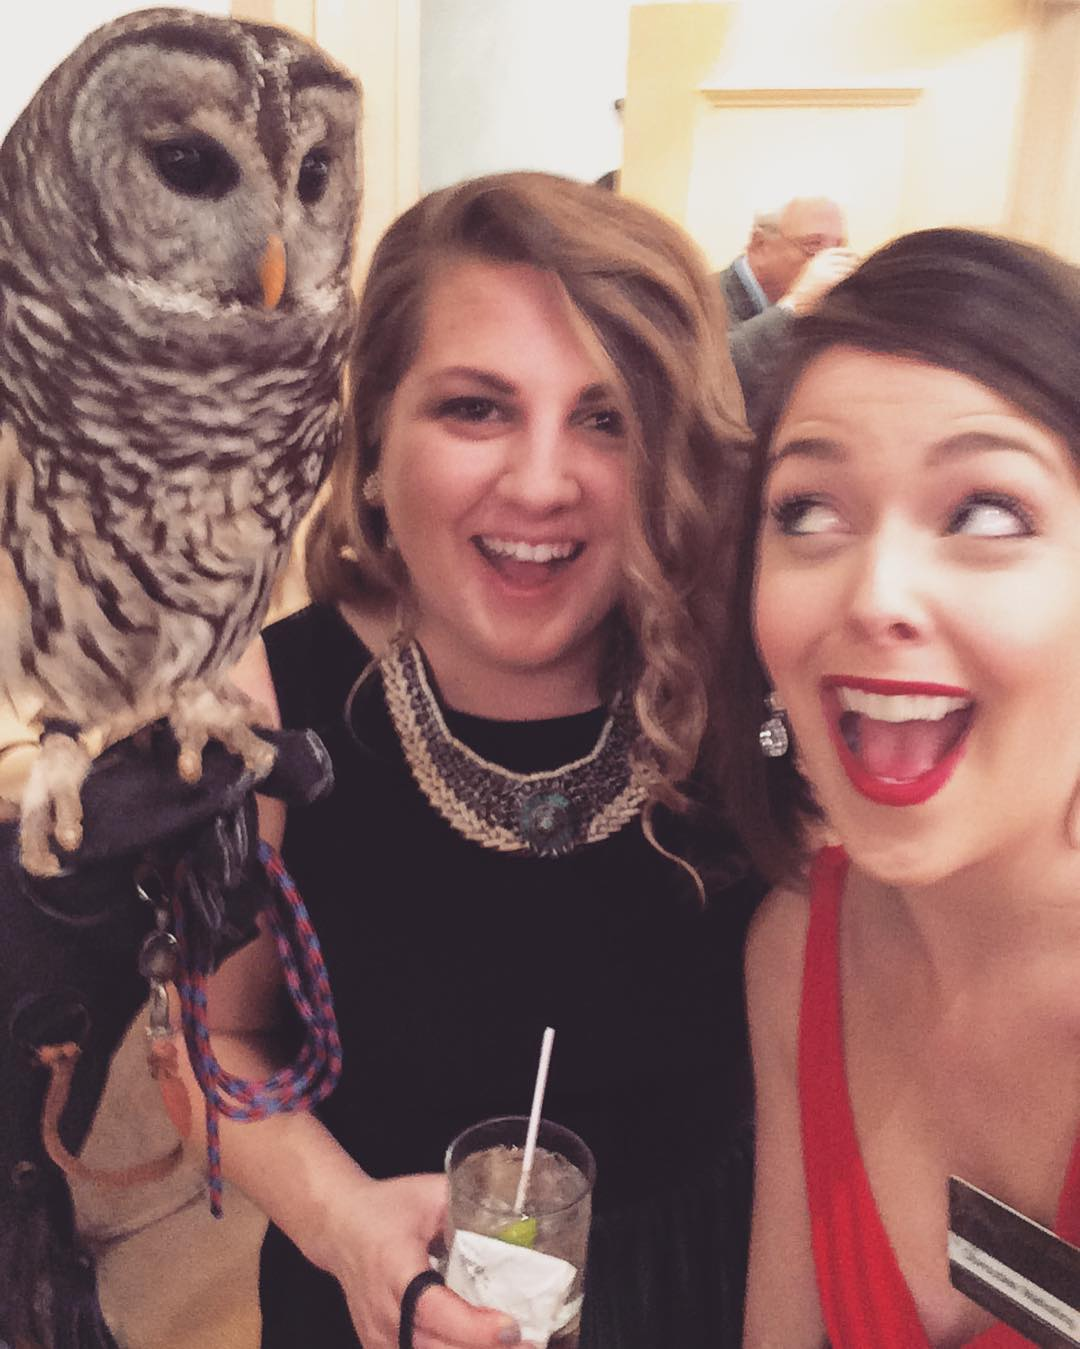 Sometimes you put on a ball gown and hang with an owl. #SEWE2016 #omwerkperks